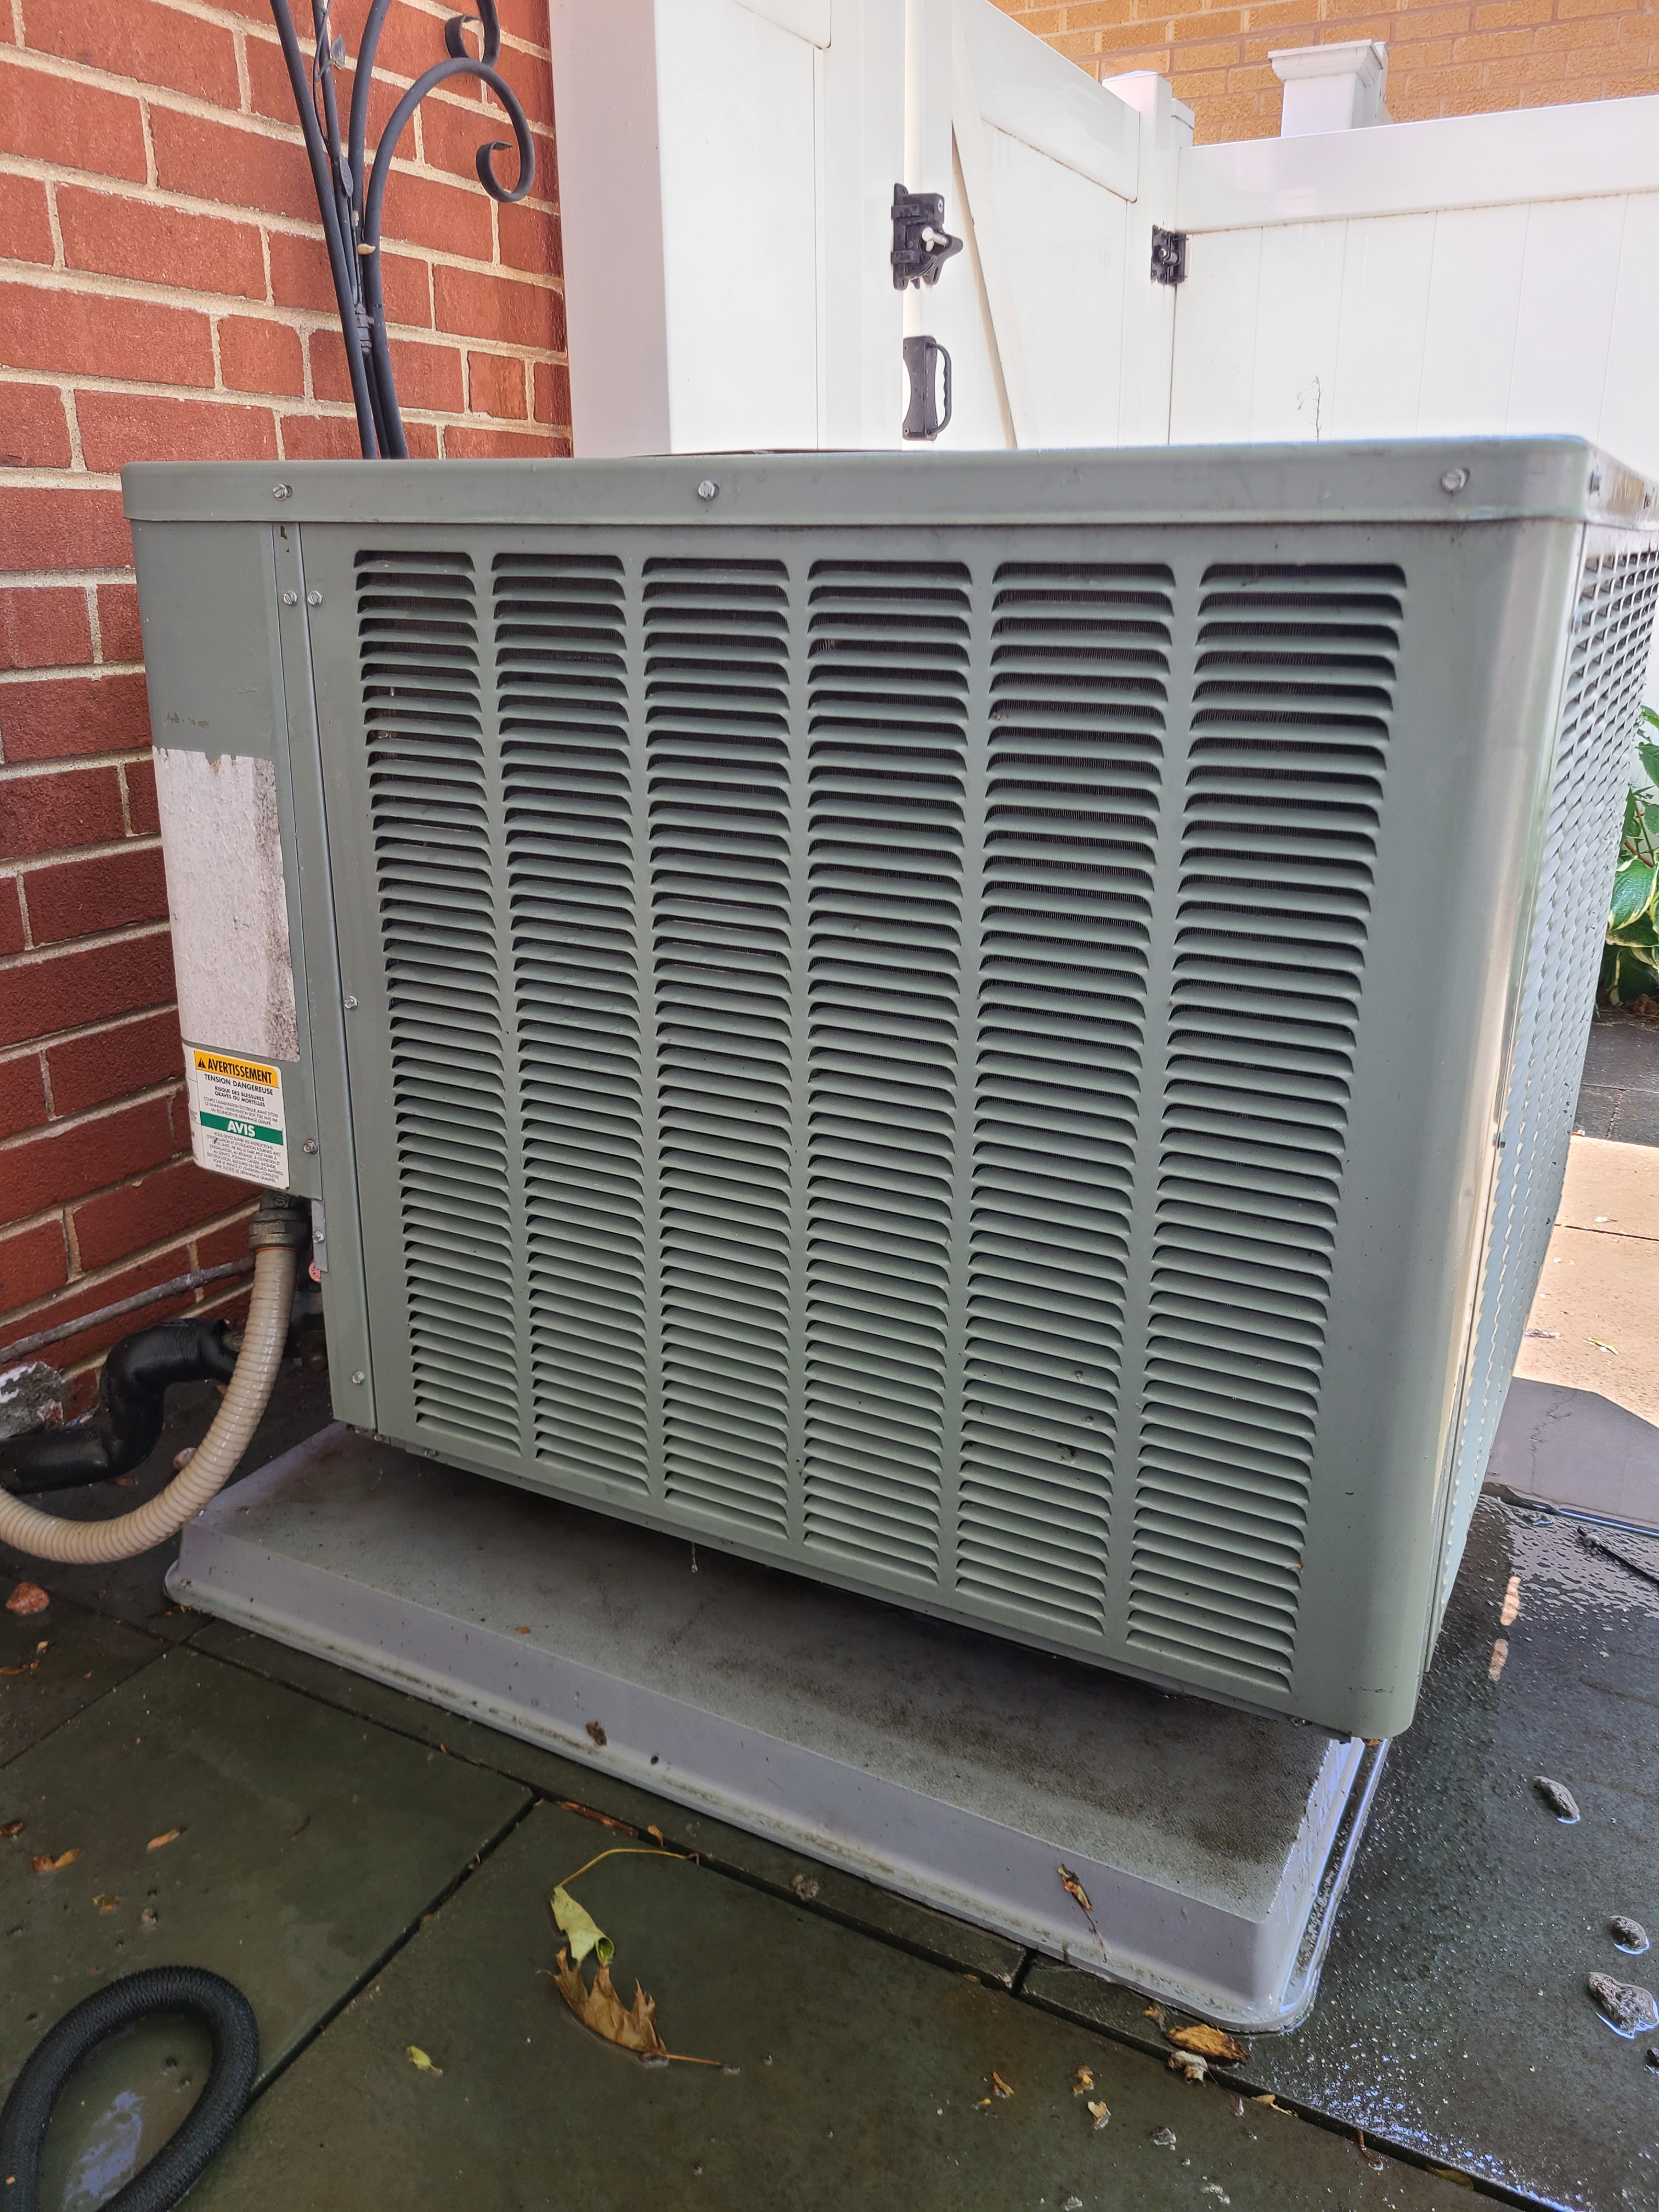 Weatherking r410a system cleaned and tested